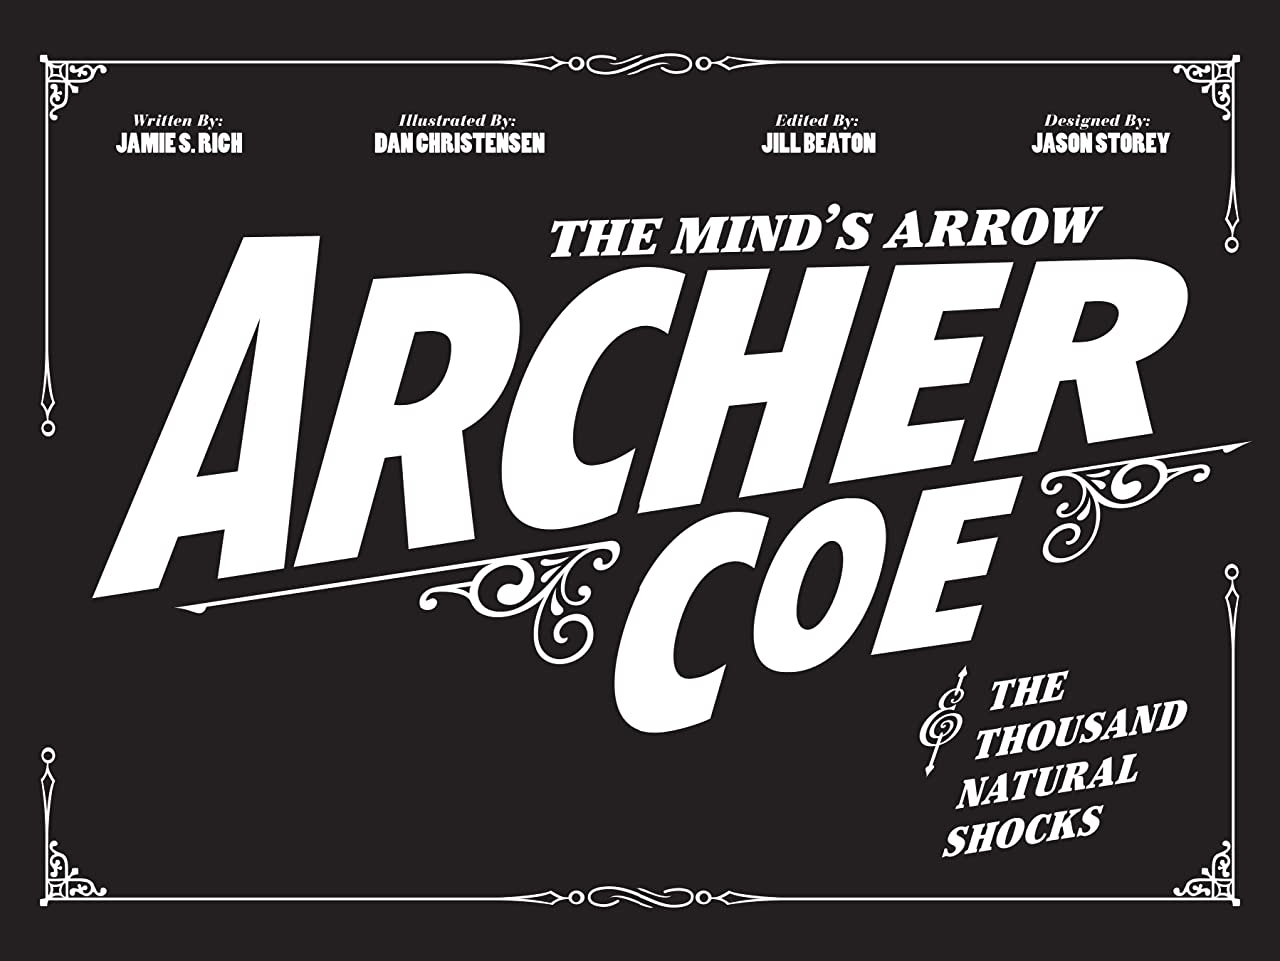 Archer Coe and the Thousand Natural Shocks Tome 1